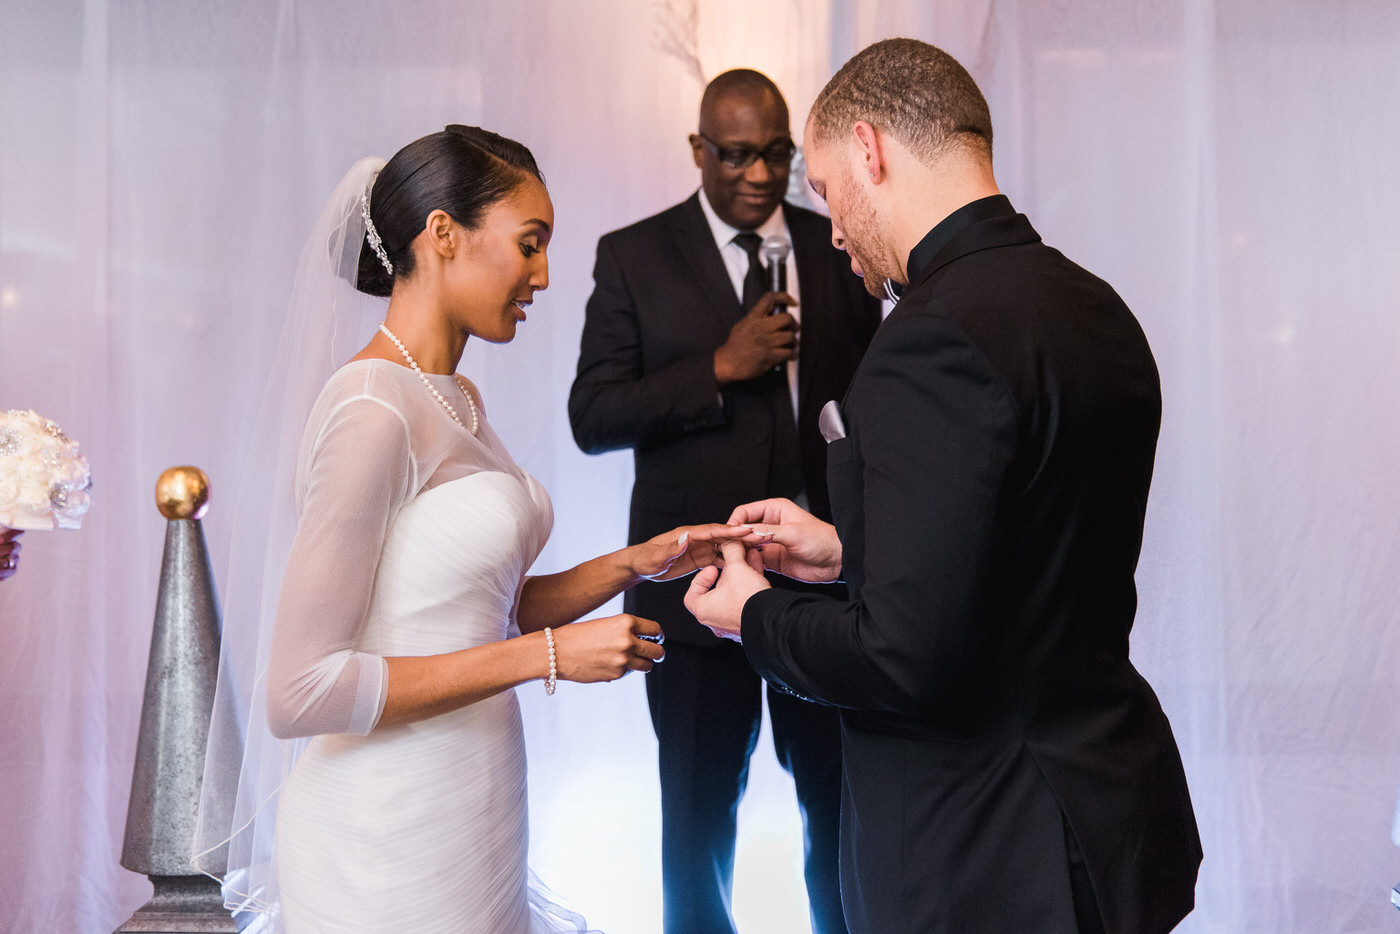 Exchange of rings at New Year's Eve wedding in Toronto